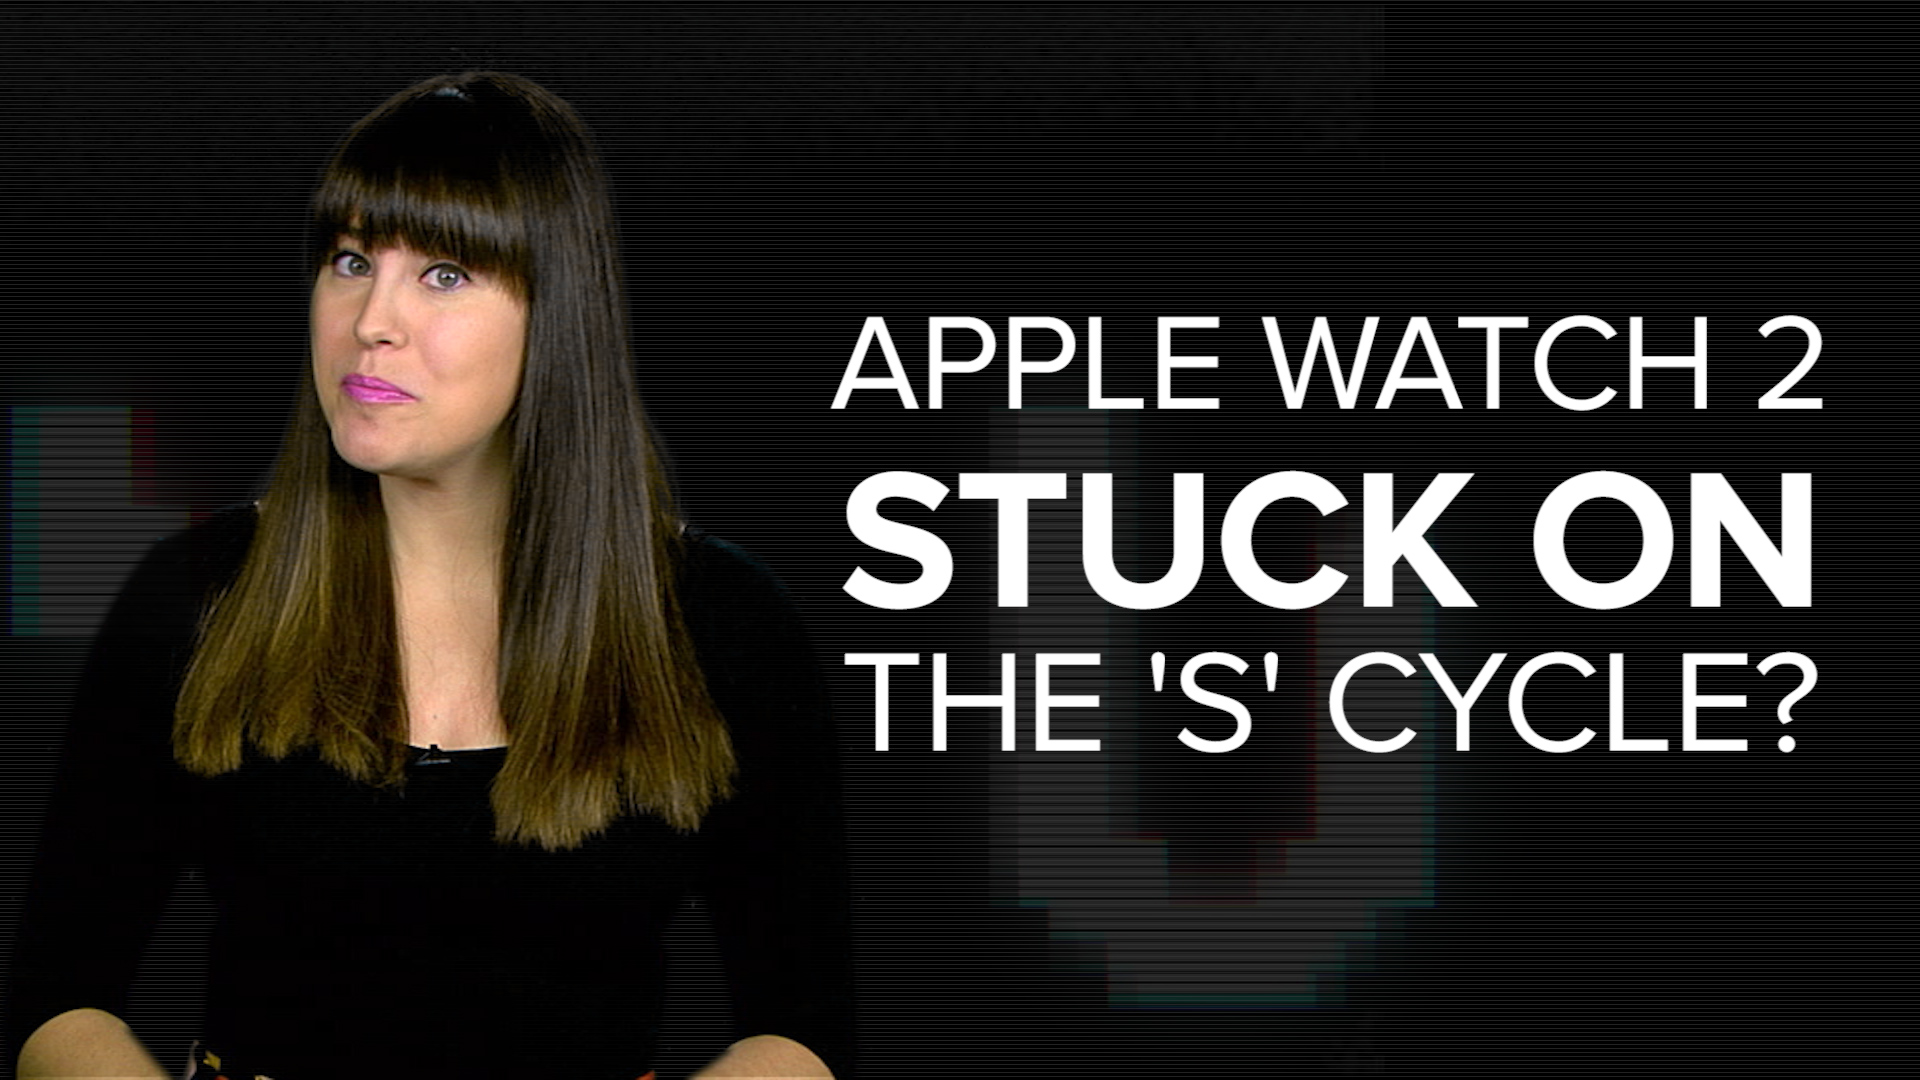 Will the Apple Watch 2 get stuck on the S cycle?